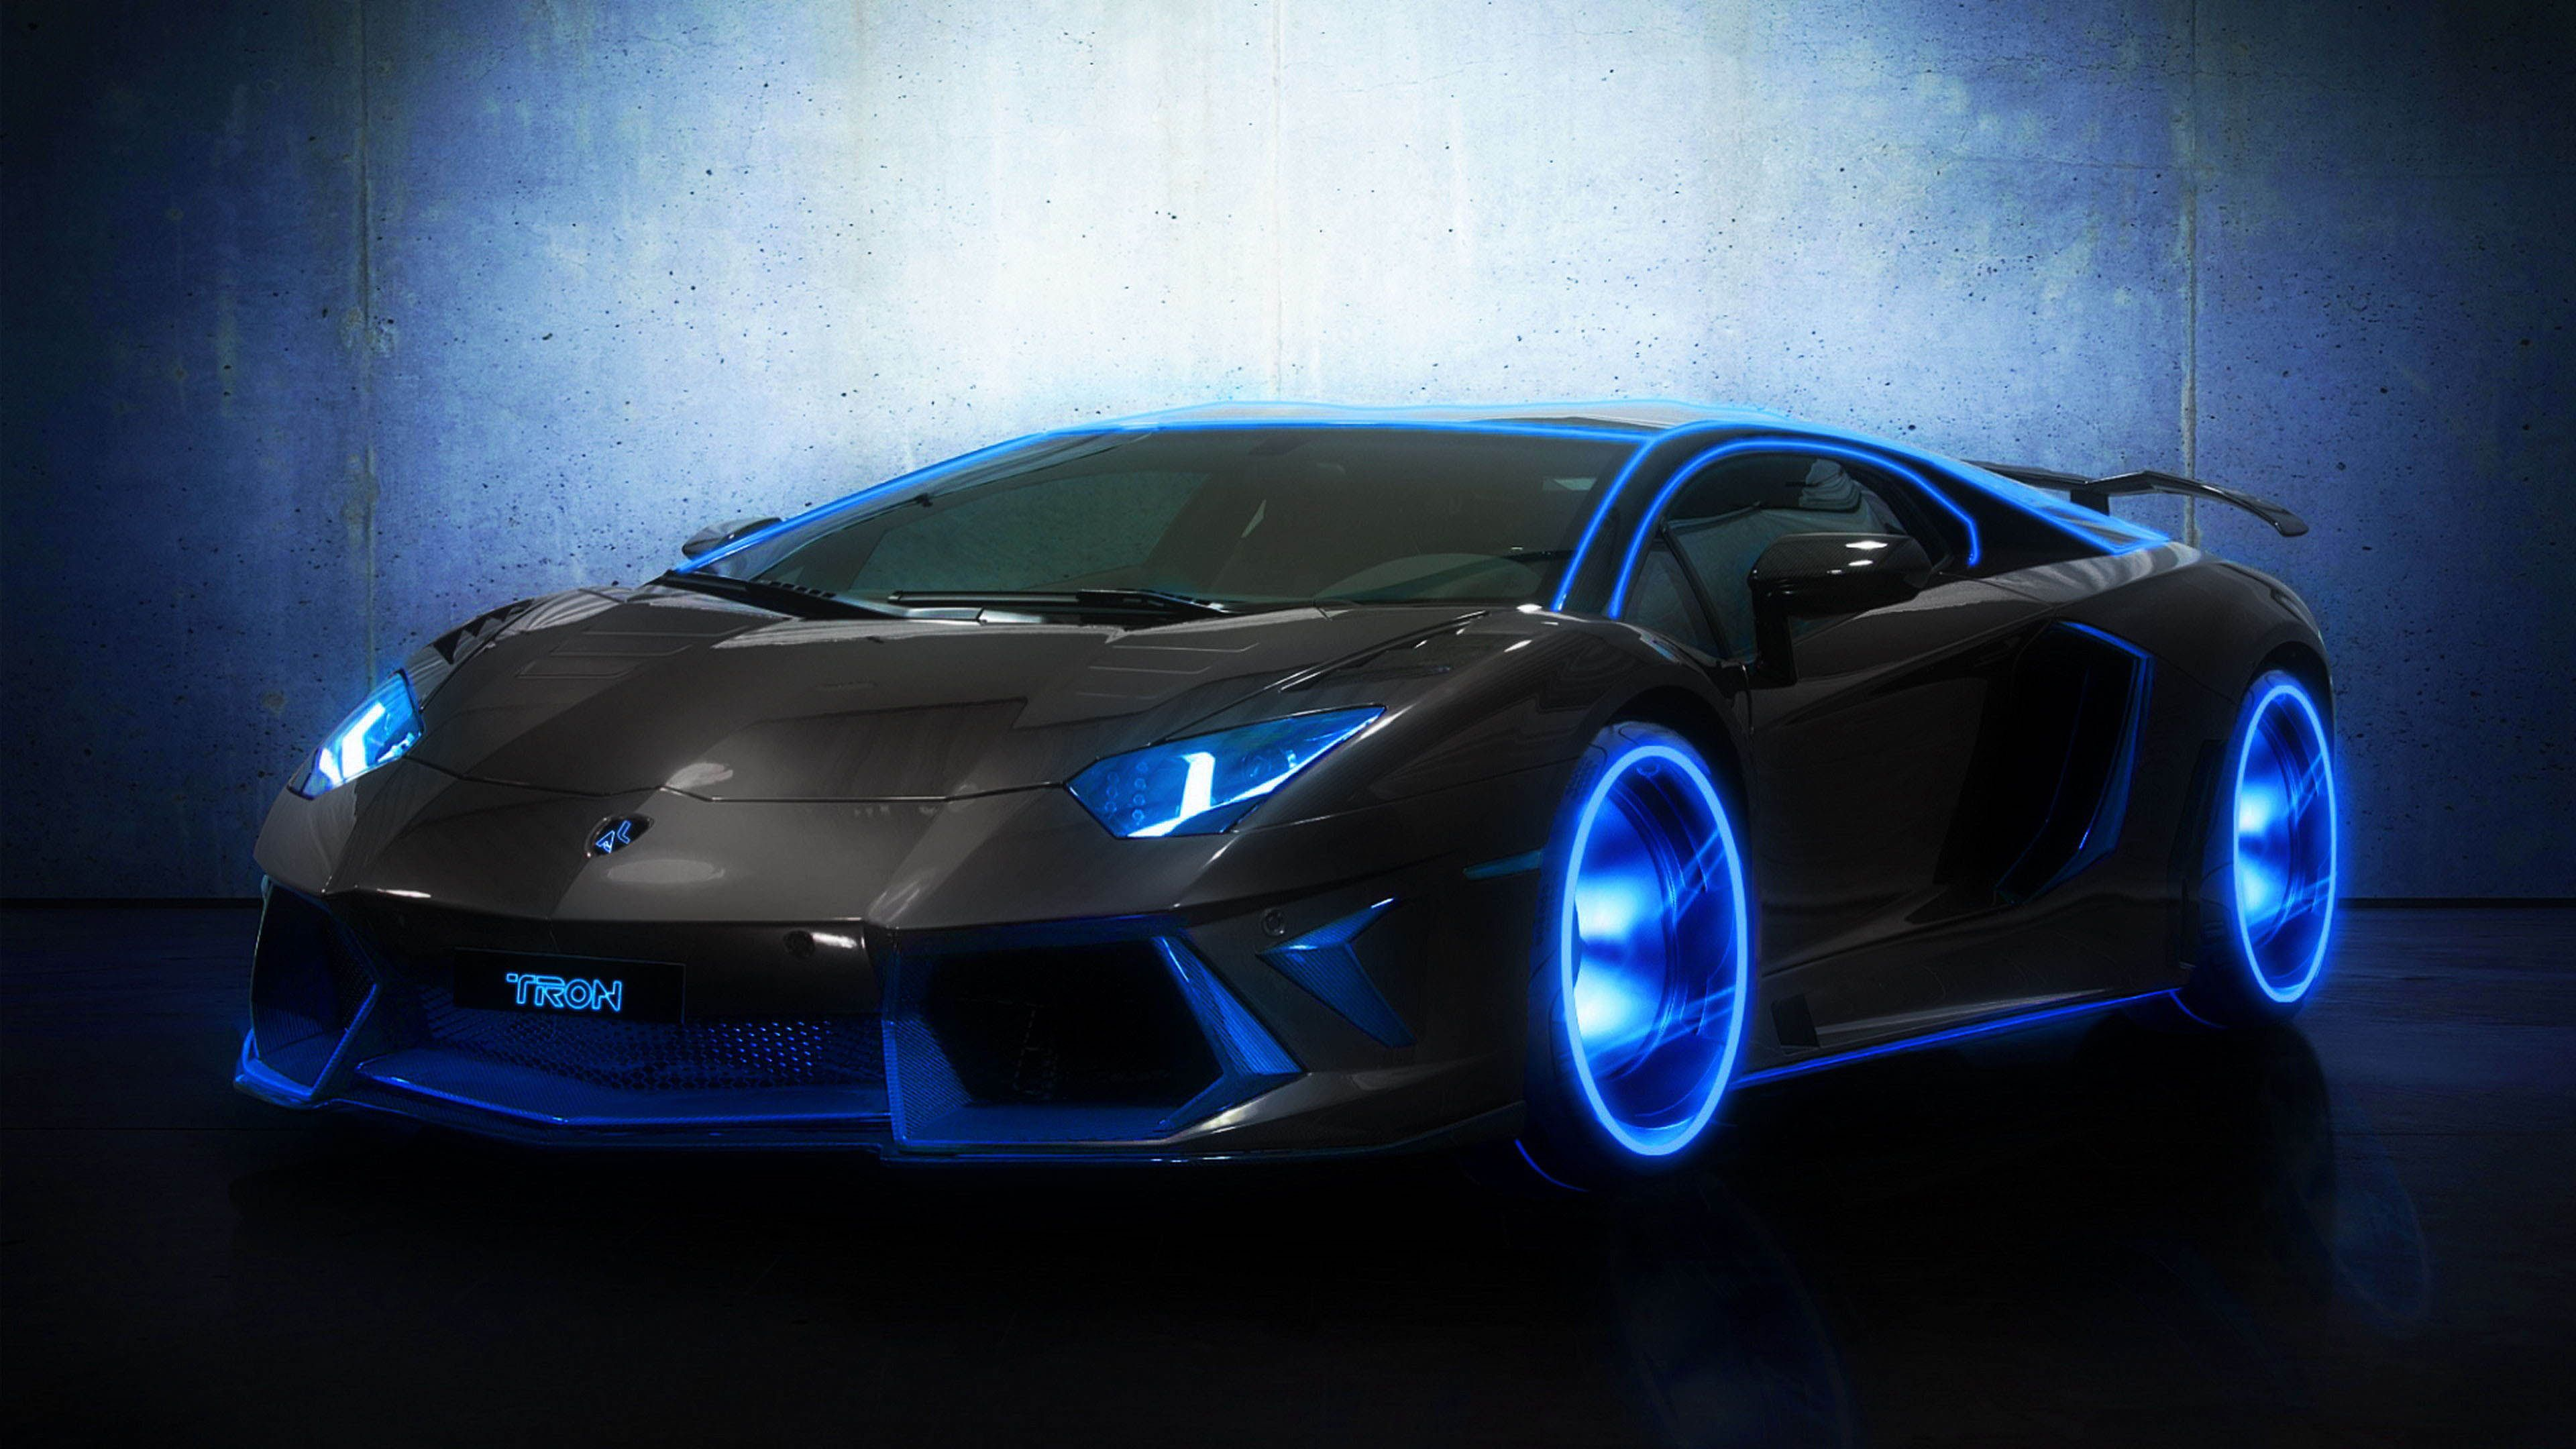 Lamborghini Aventador Blue Wallpaper Jpg X Desktop Wallpaper 171797